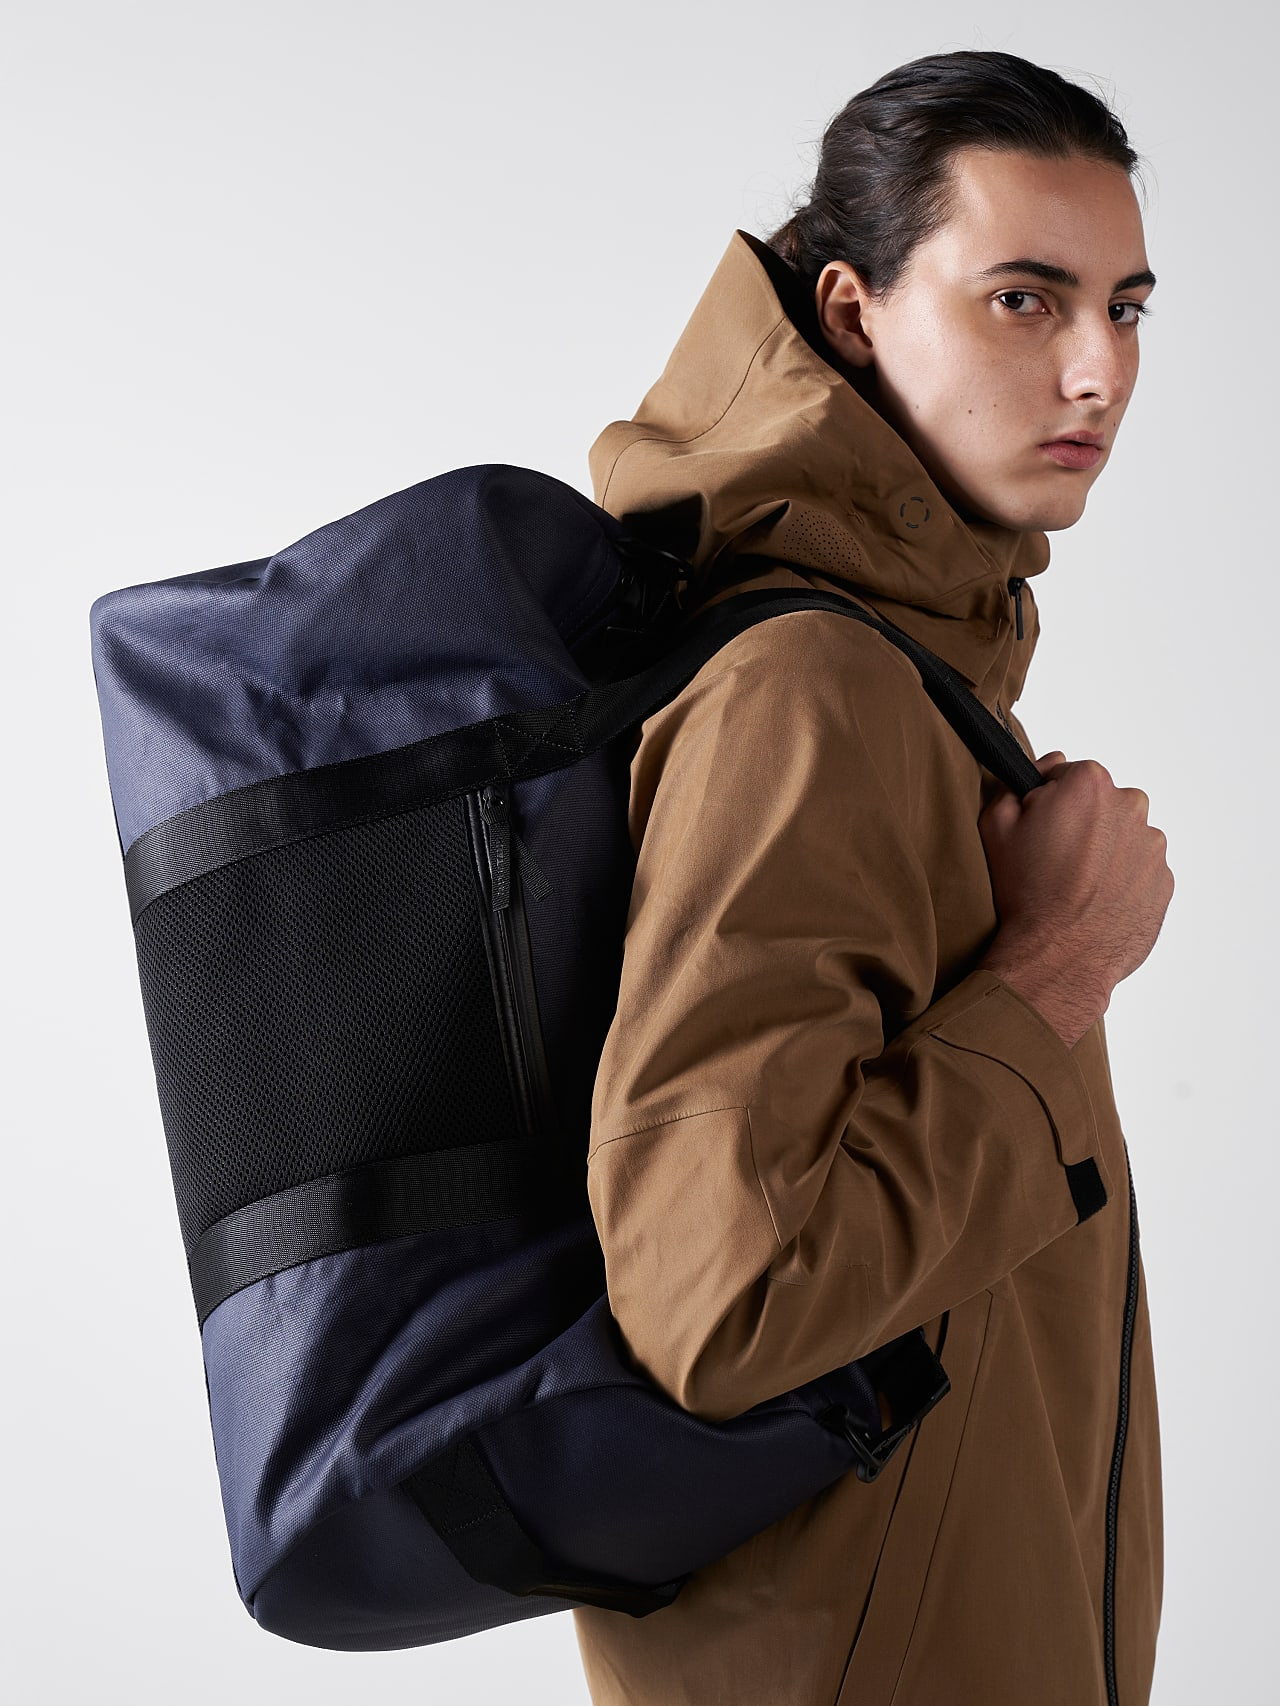 AWEE V3.Y5.01 Water-Resistant Duffle Bag navy Back Alpha Tauri